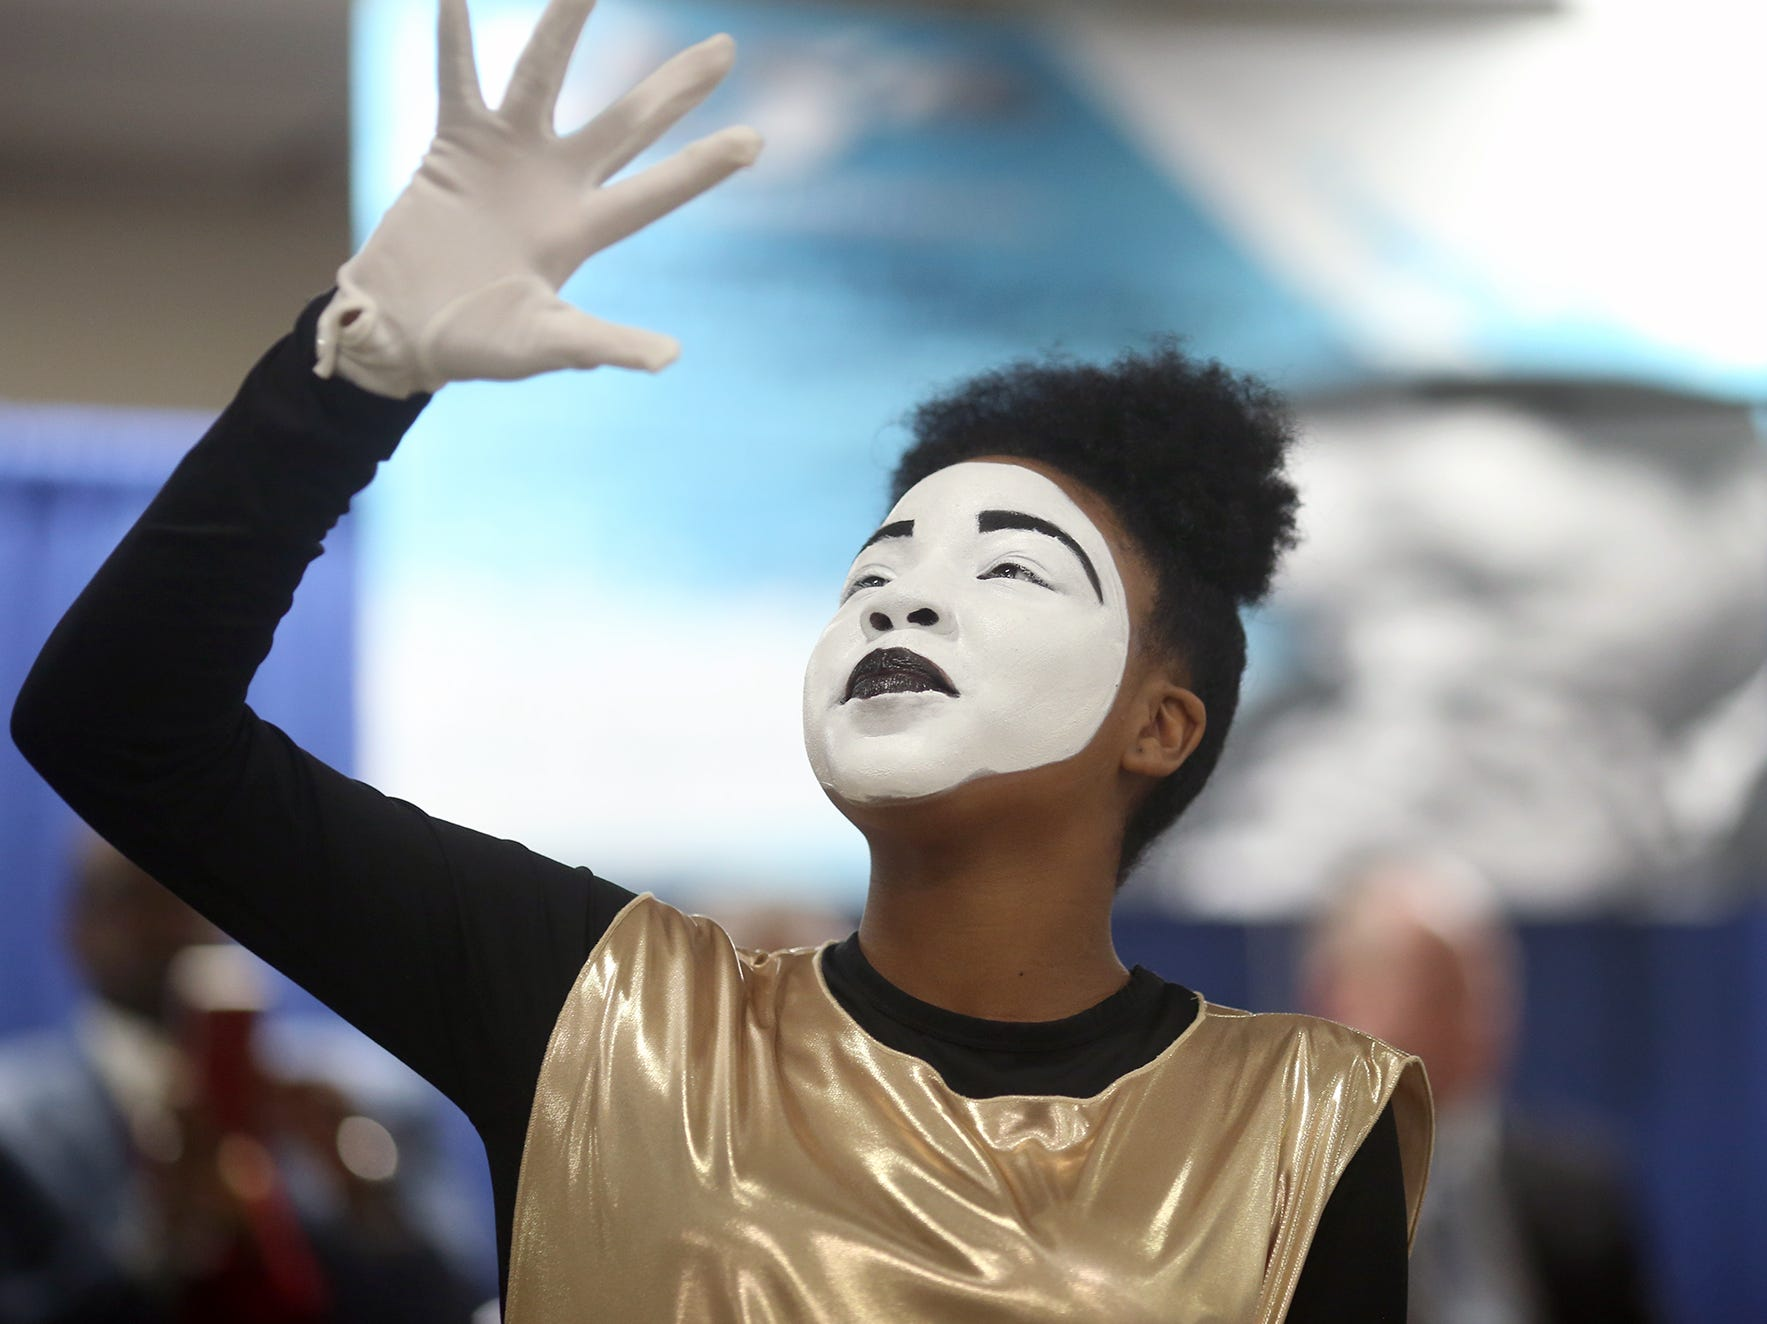 Promise Bell, 13,  of the MLK Community Mine Dance Ministry performs at the 25th annual Reverend Dr. Martin Luther King, Jr. celebration was held at PresidentsÕ Hall at the Kitsap County Fairgrounds on Monday, January, 21 , 2019.